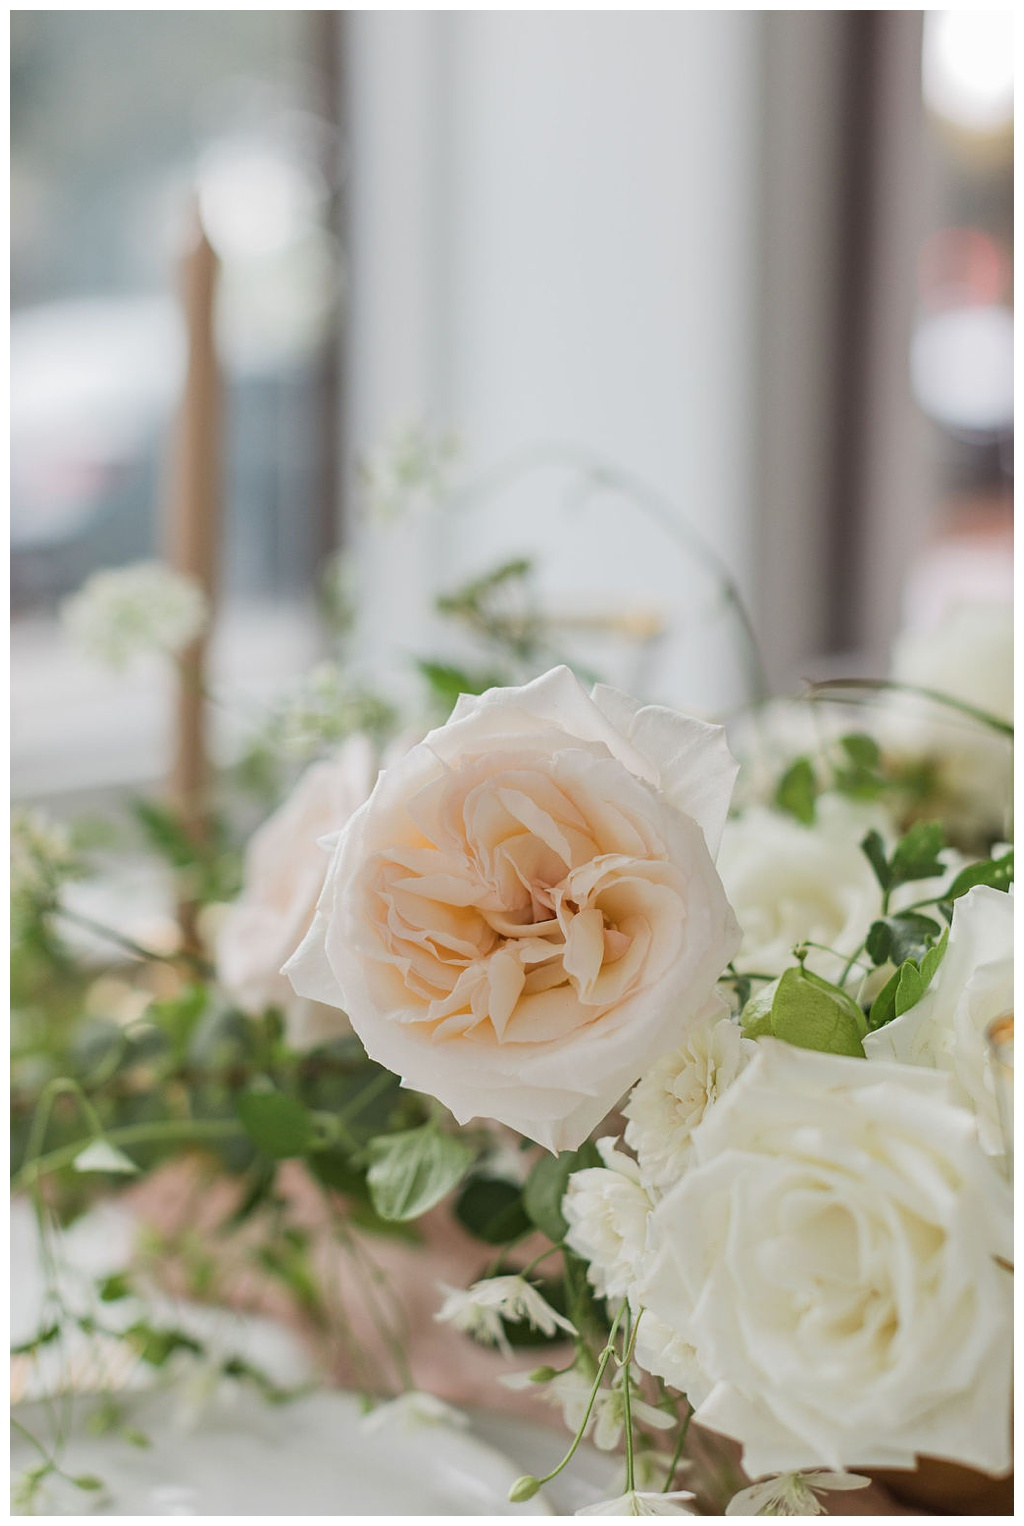 a blush colored garden rose in a wedding centerpiece for an indoor Seattle wedding